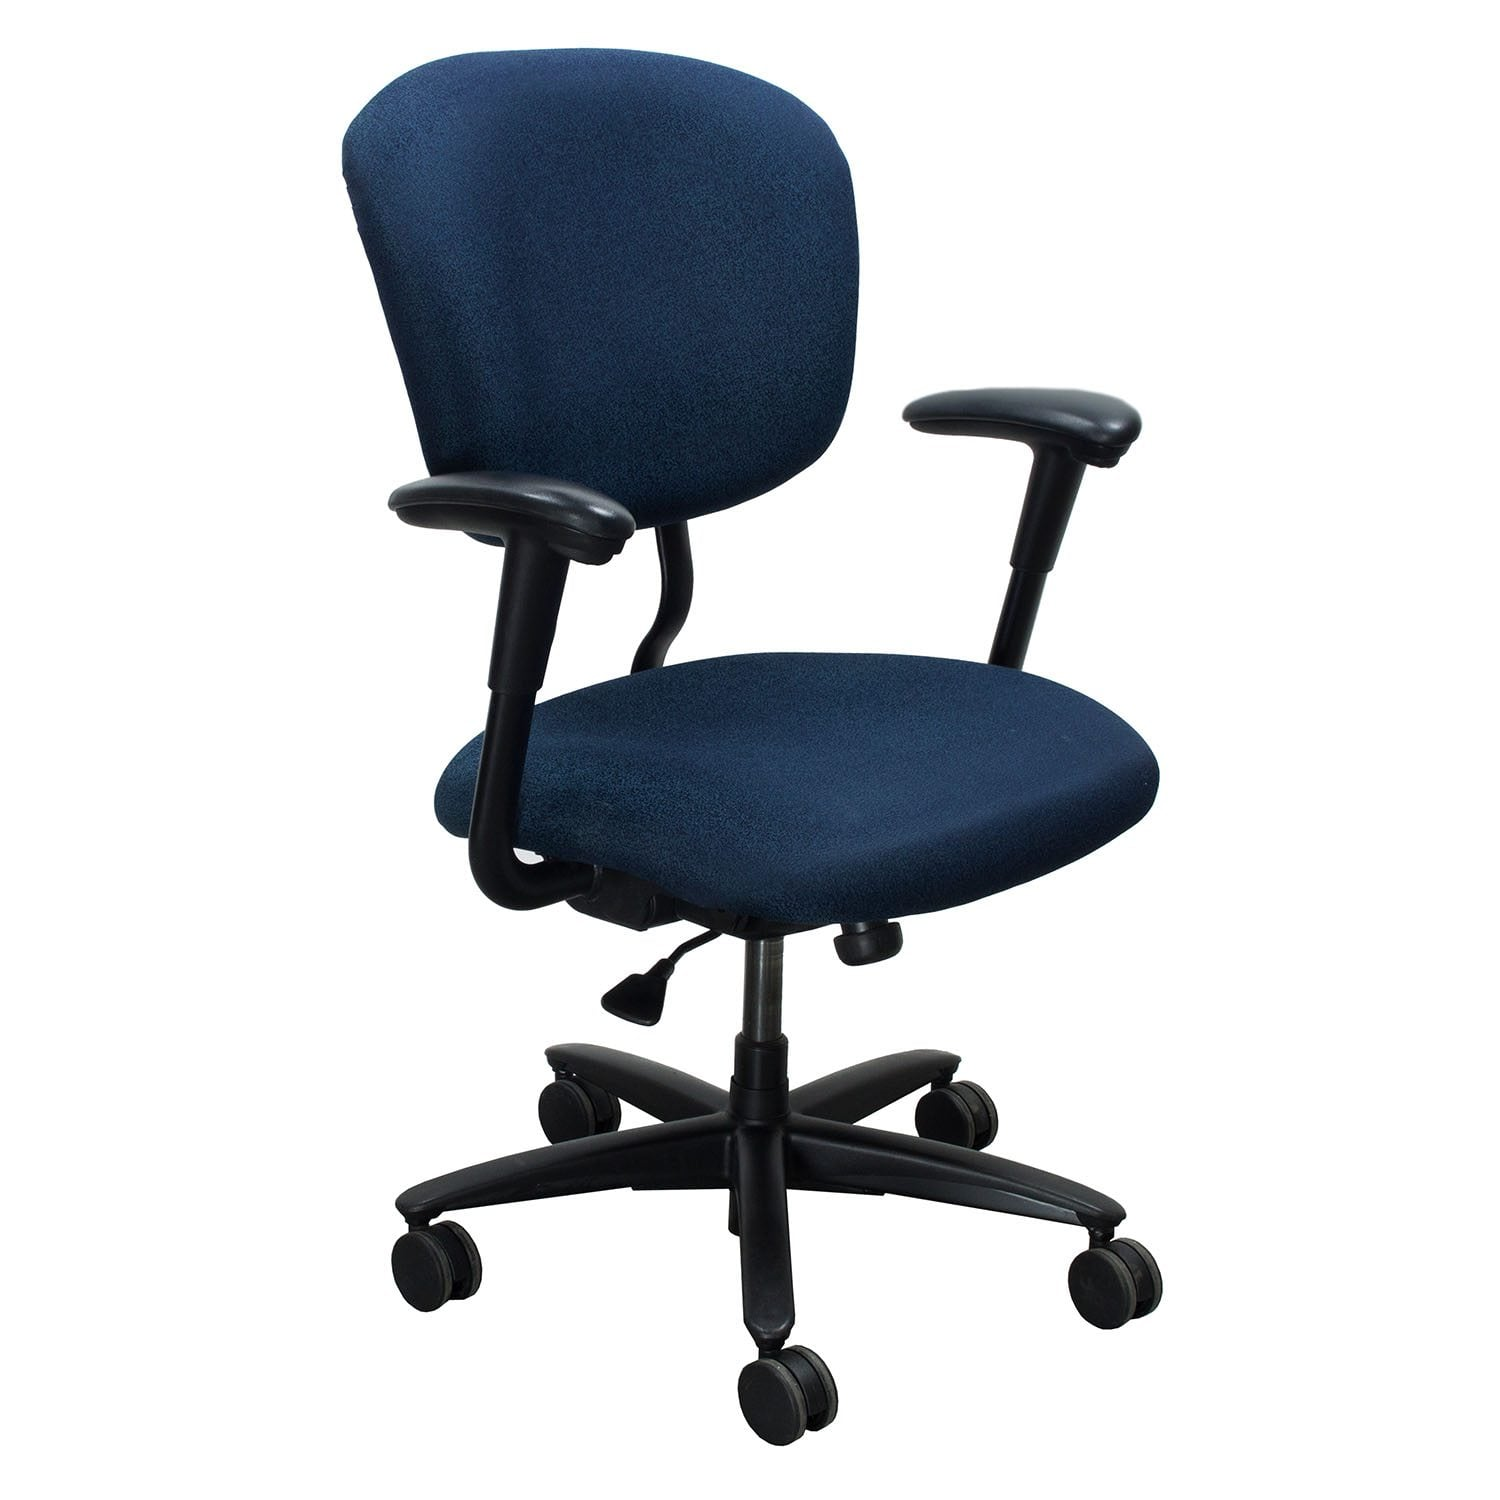 xl desk chair diy thanksgiving covers haworth improv used task blue speckle national